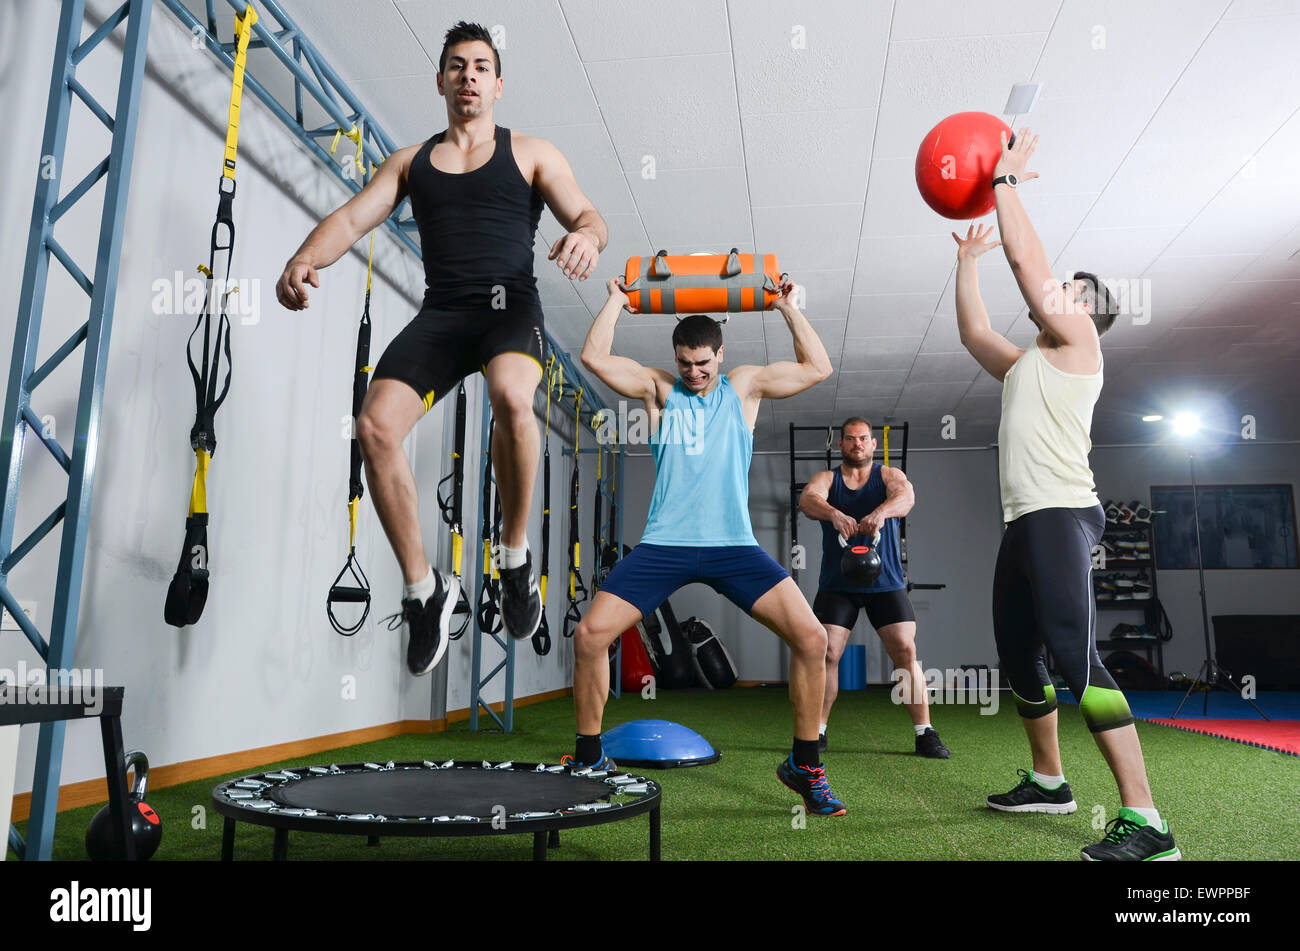 Crossfit team in action training at gym - Stock Image